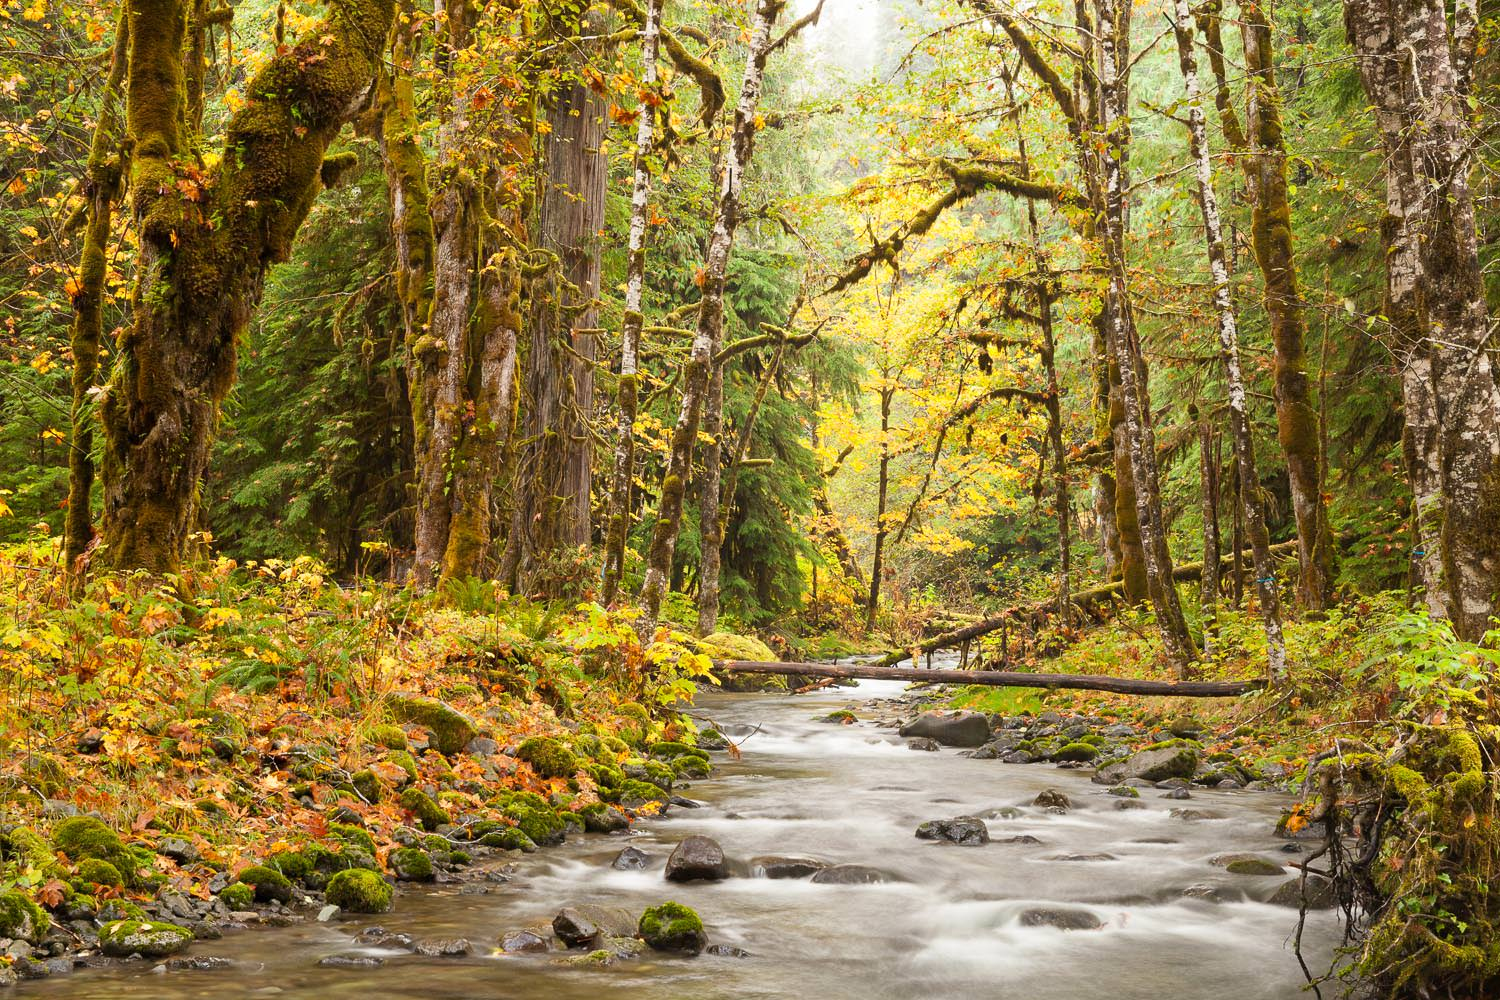 forest-creek-in-autumn-vancouver-island.jpg